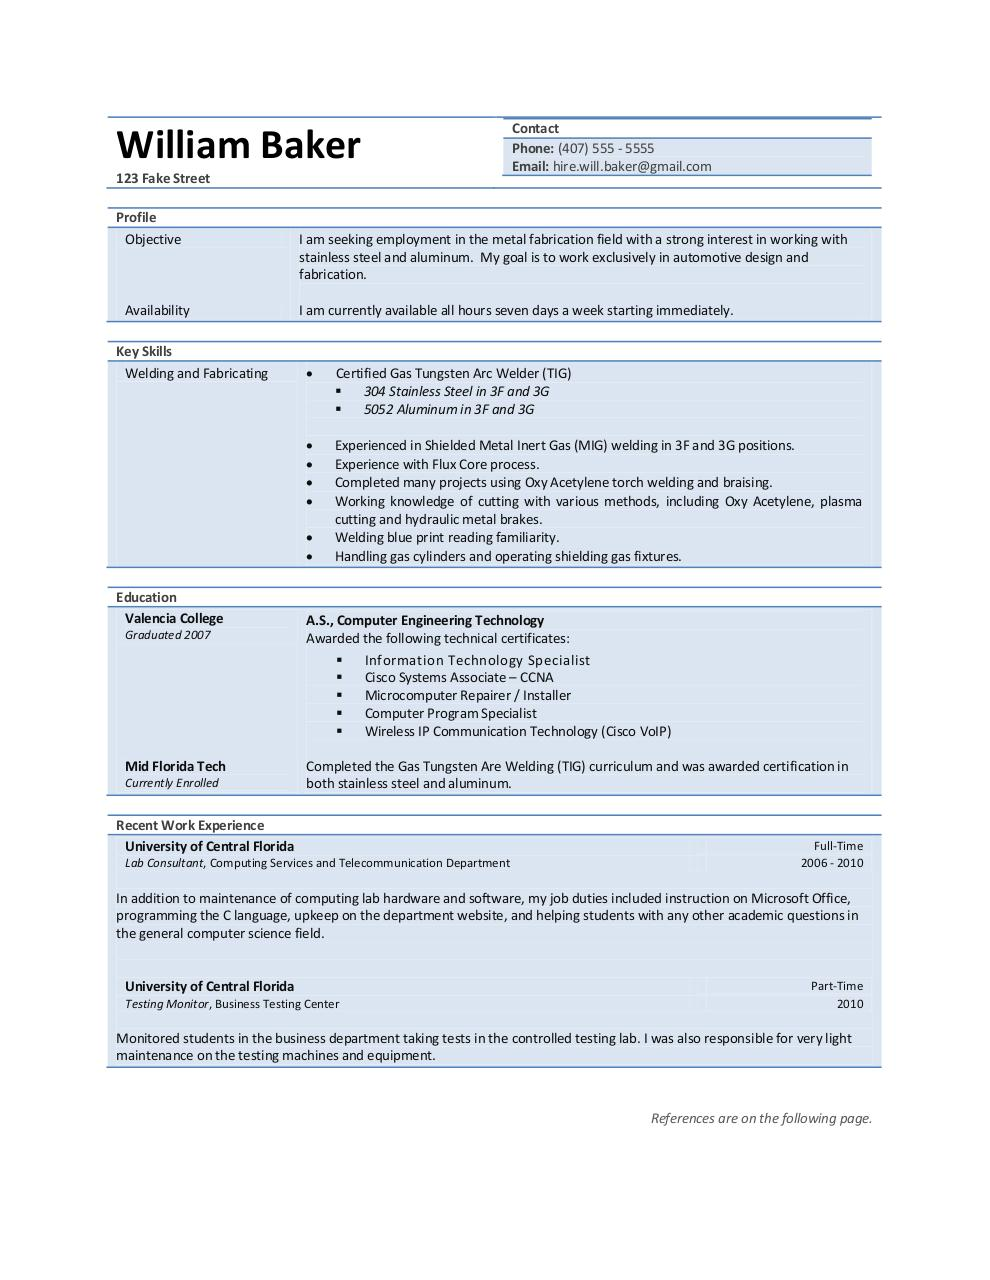 william baker welding resume by will